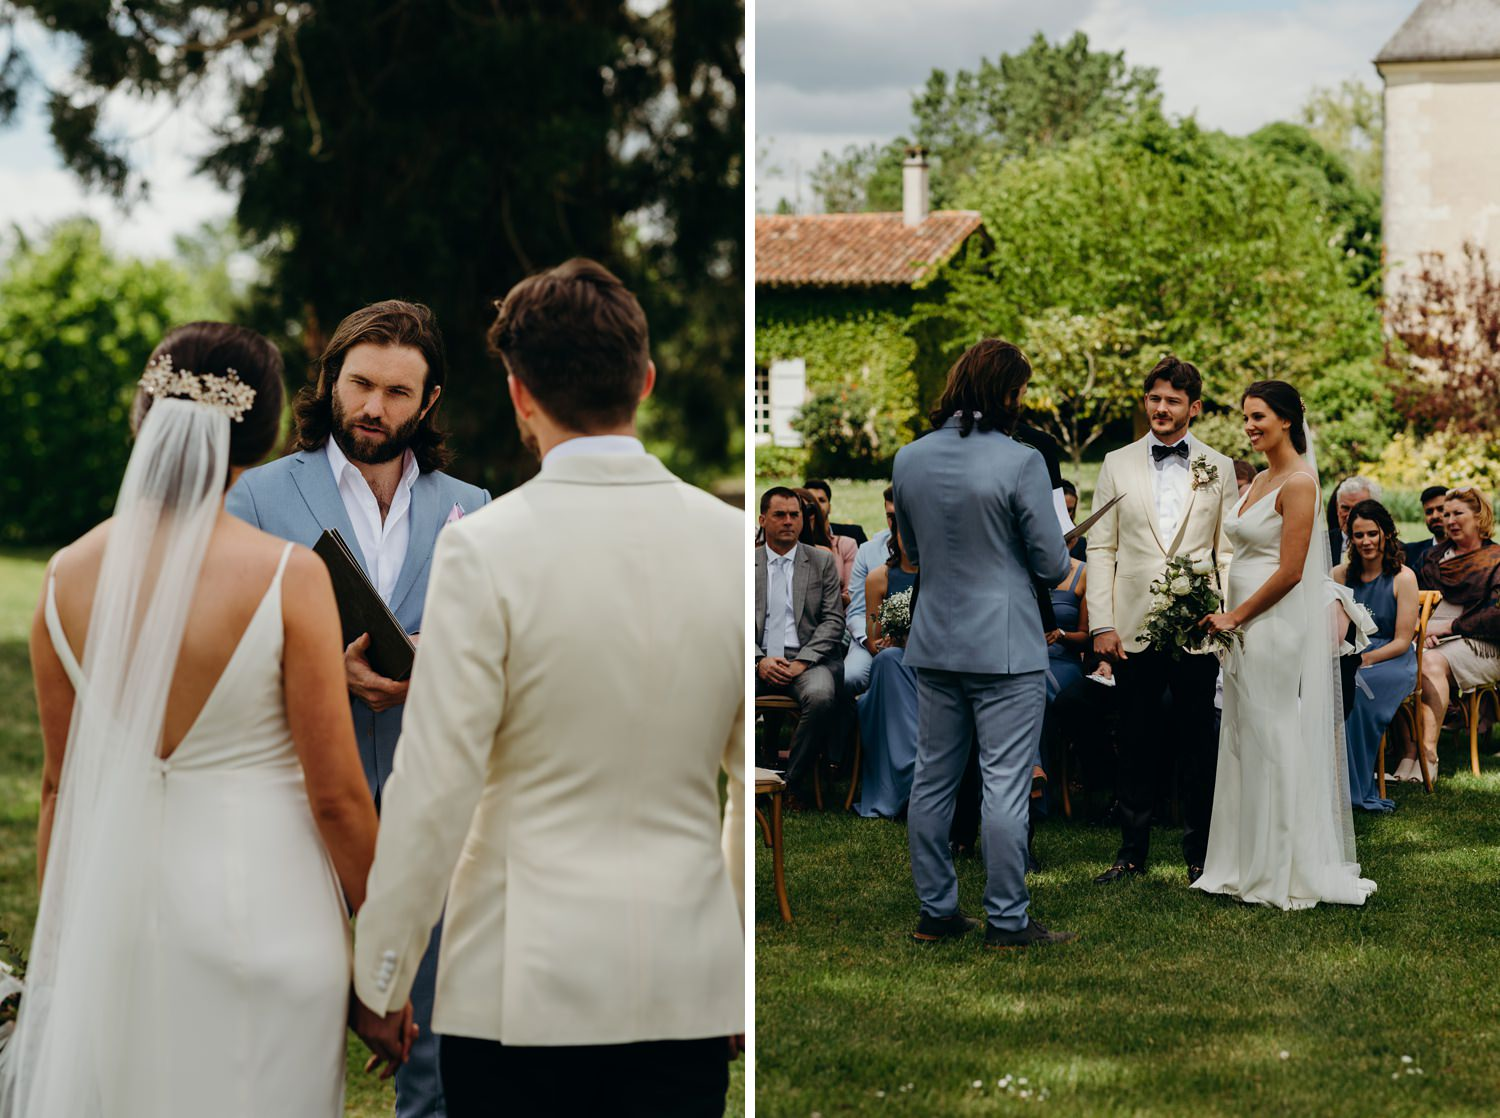 Le mas de montet wedding photographer 038